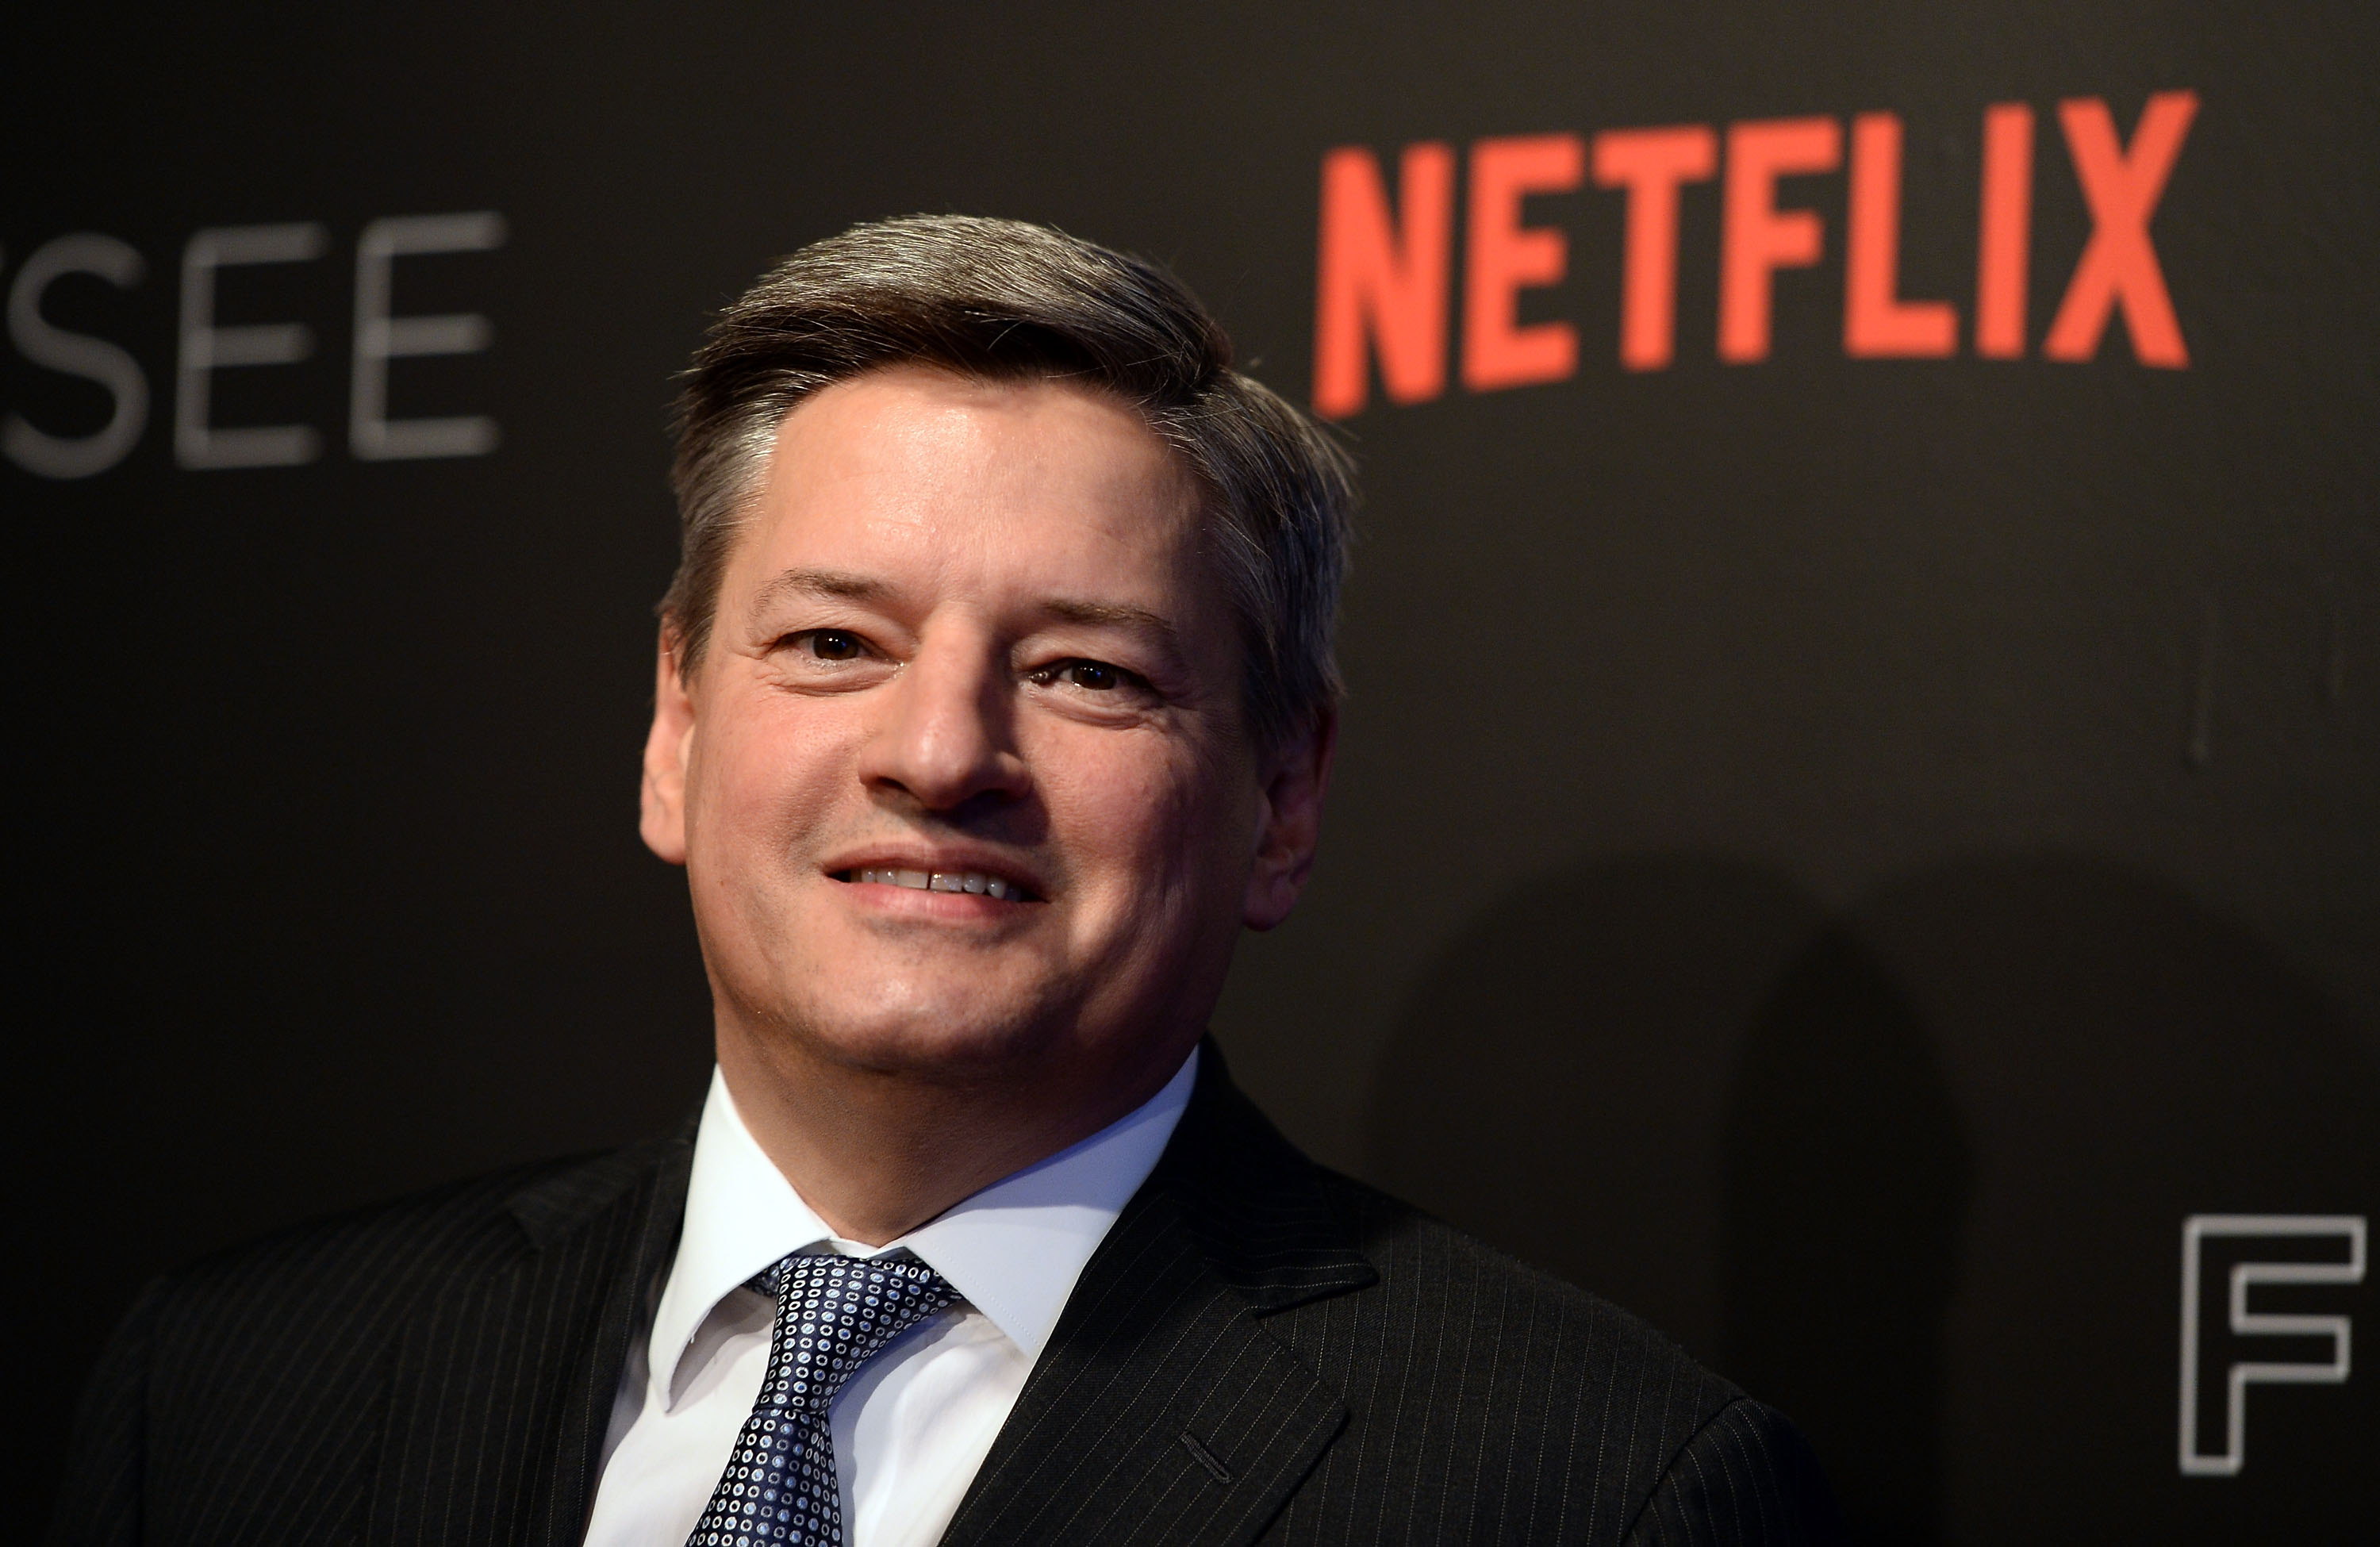 Netflix to invest 85 percent spending on original content